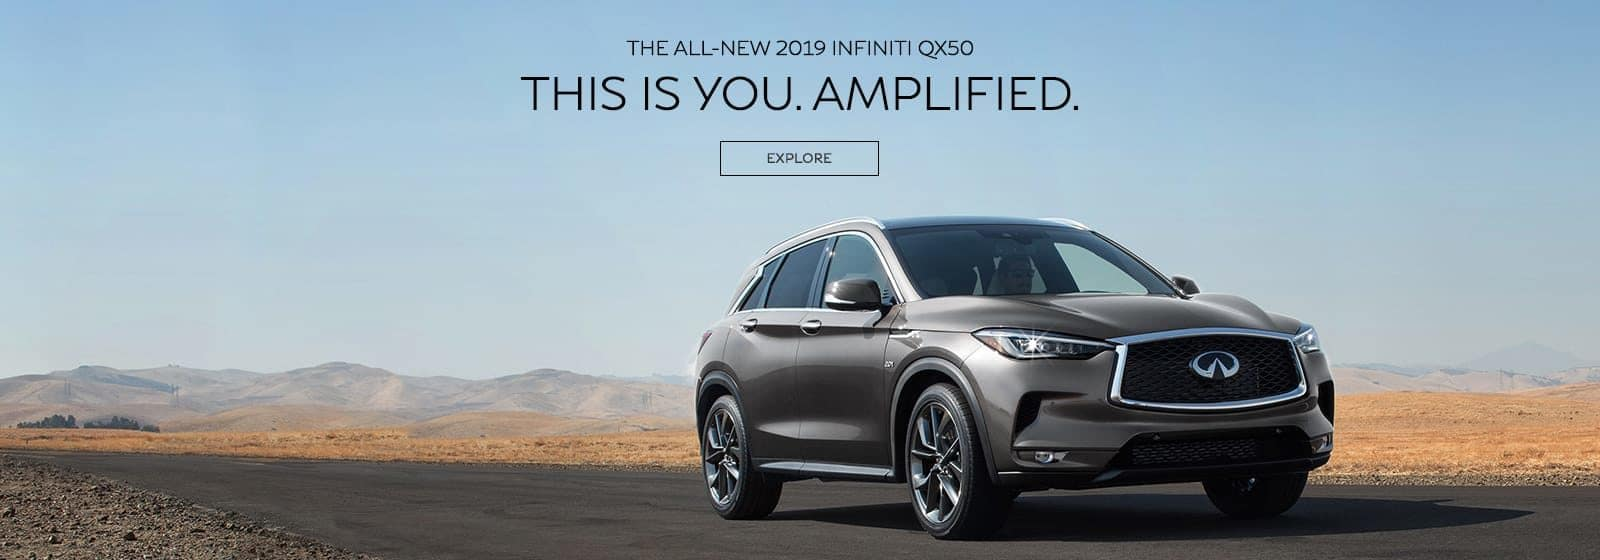 INF_QX50_Lifestyle_Tier3_1600x560-optimized